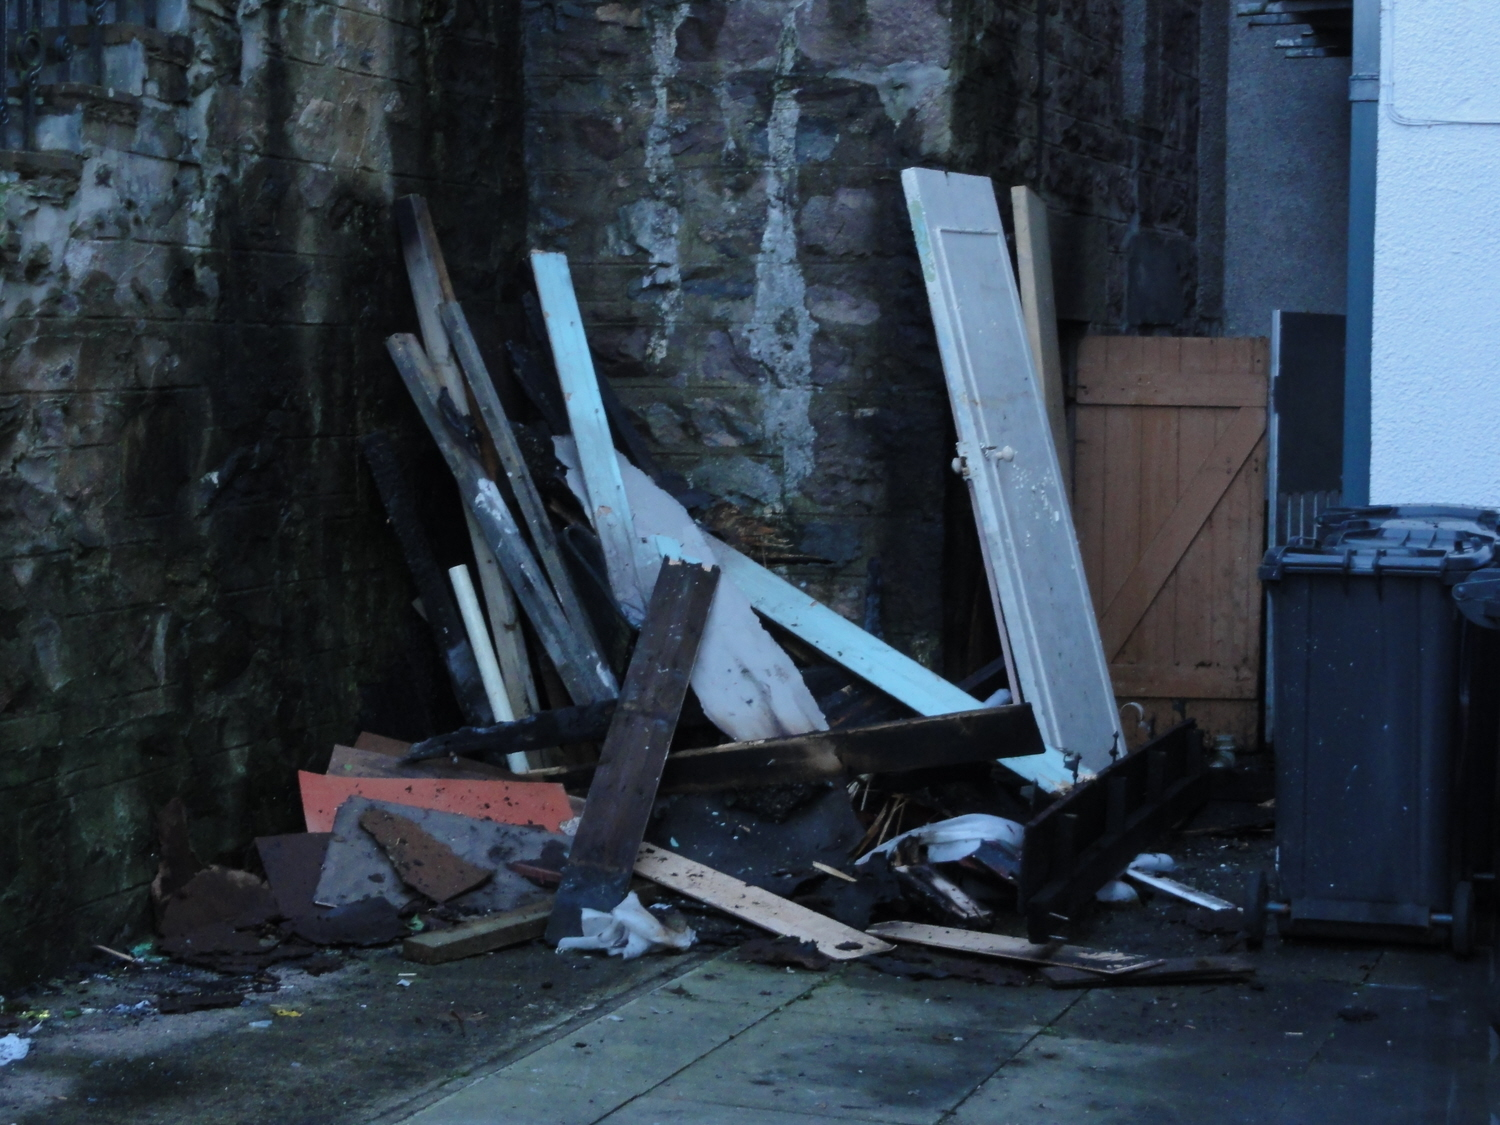 Debris piled up against the external wall of the torched building. Picture by Murdo Maclean.